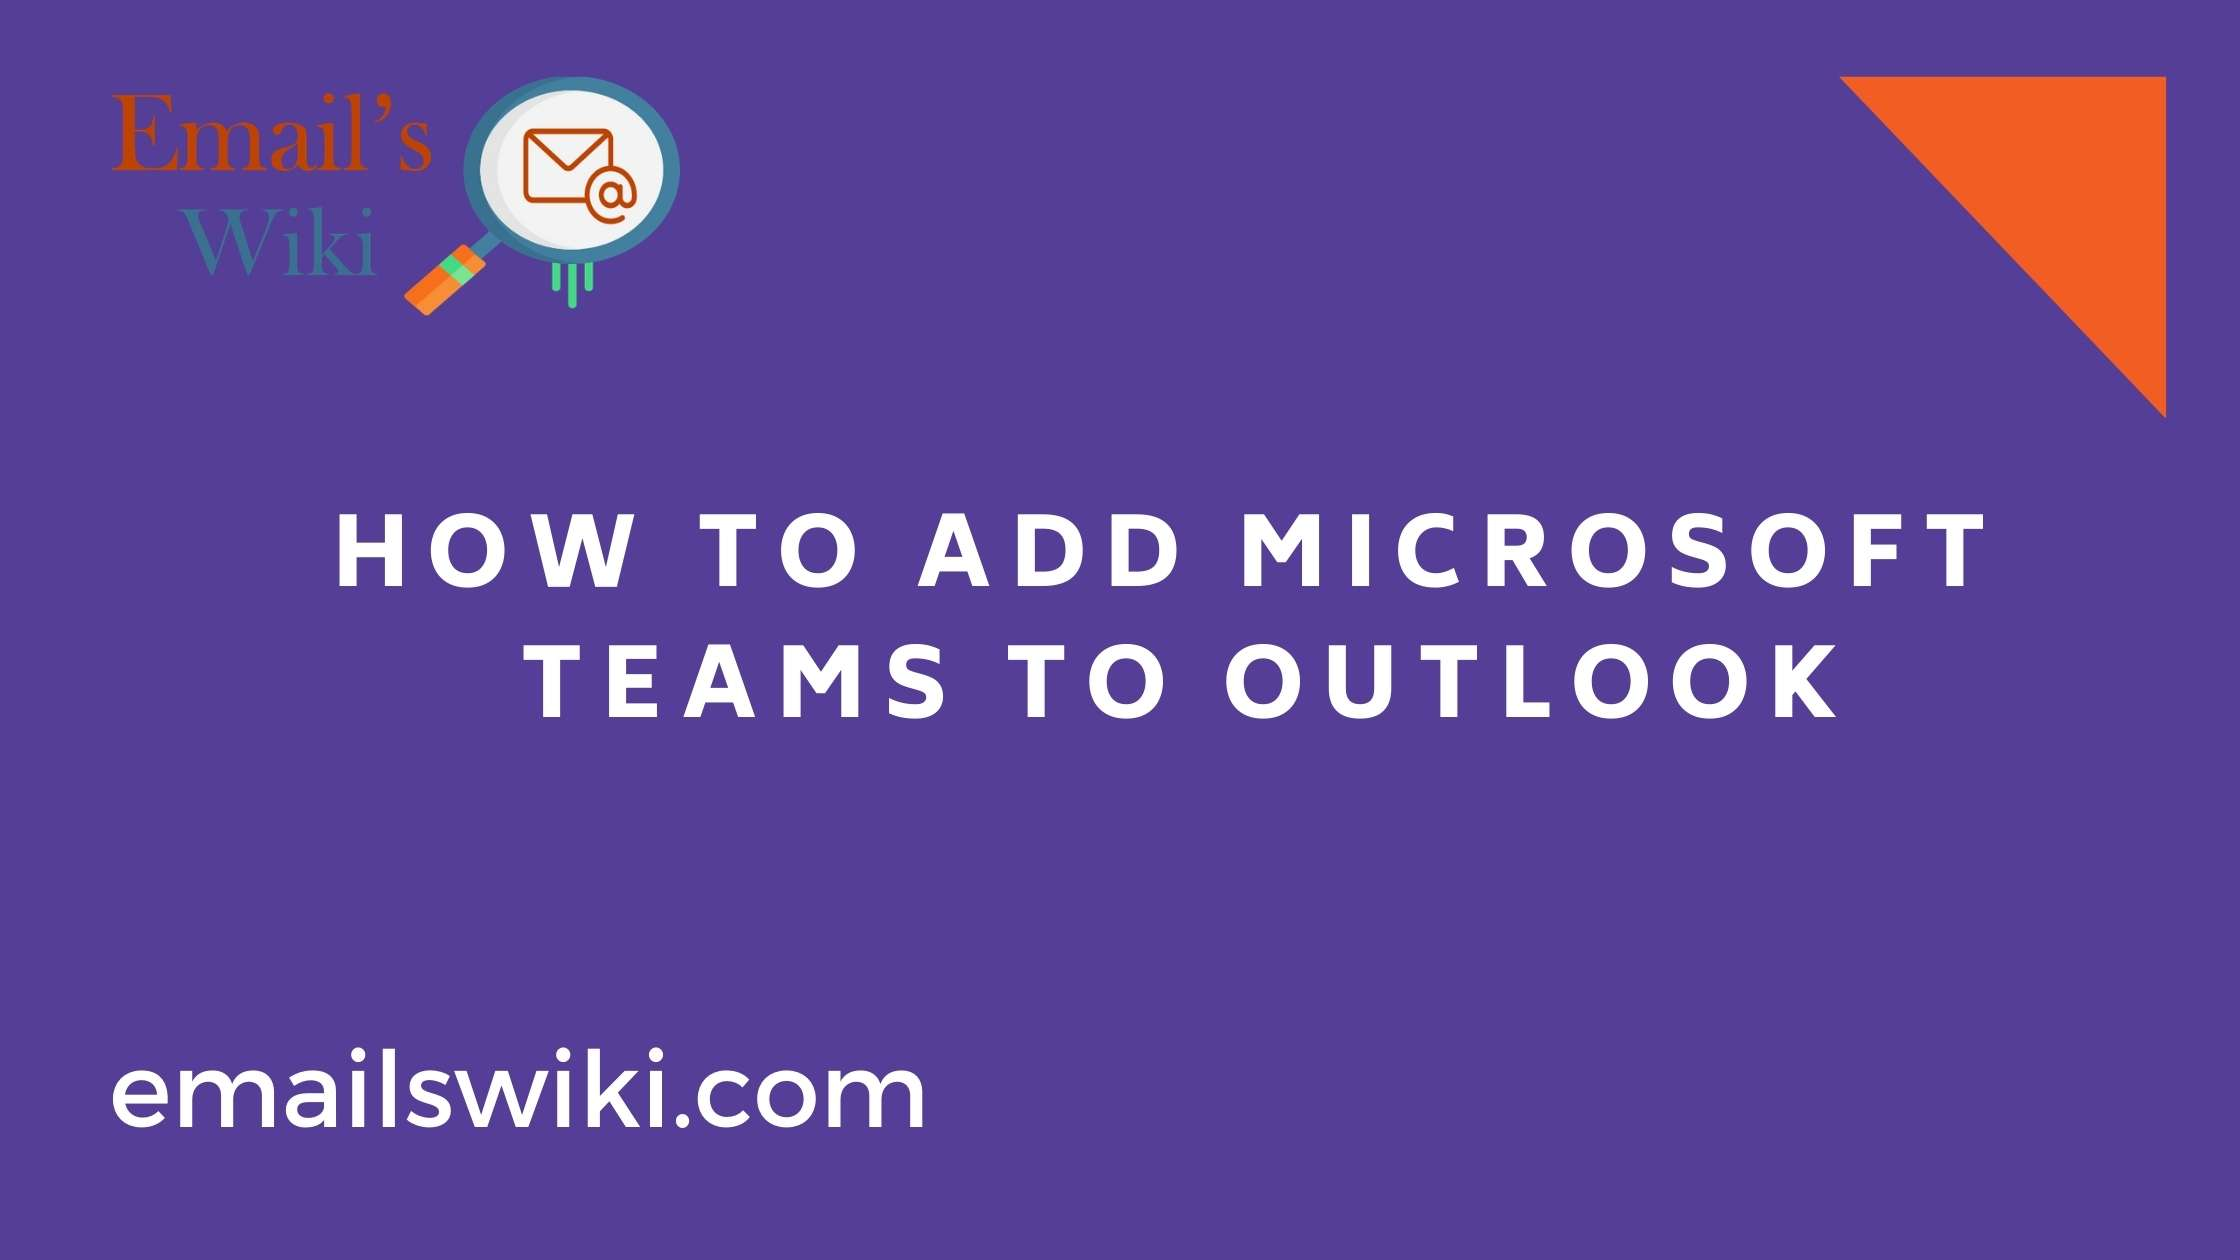 Add Microsoft Teams to Outlook